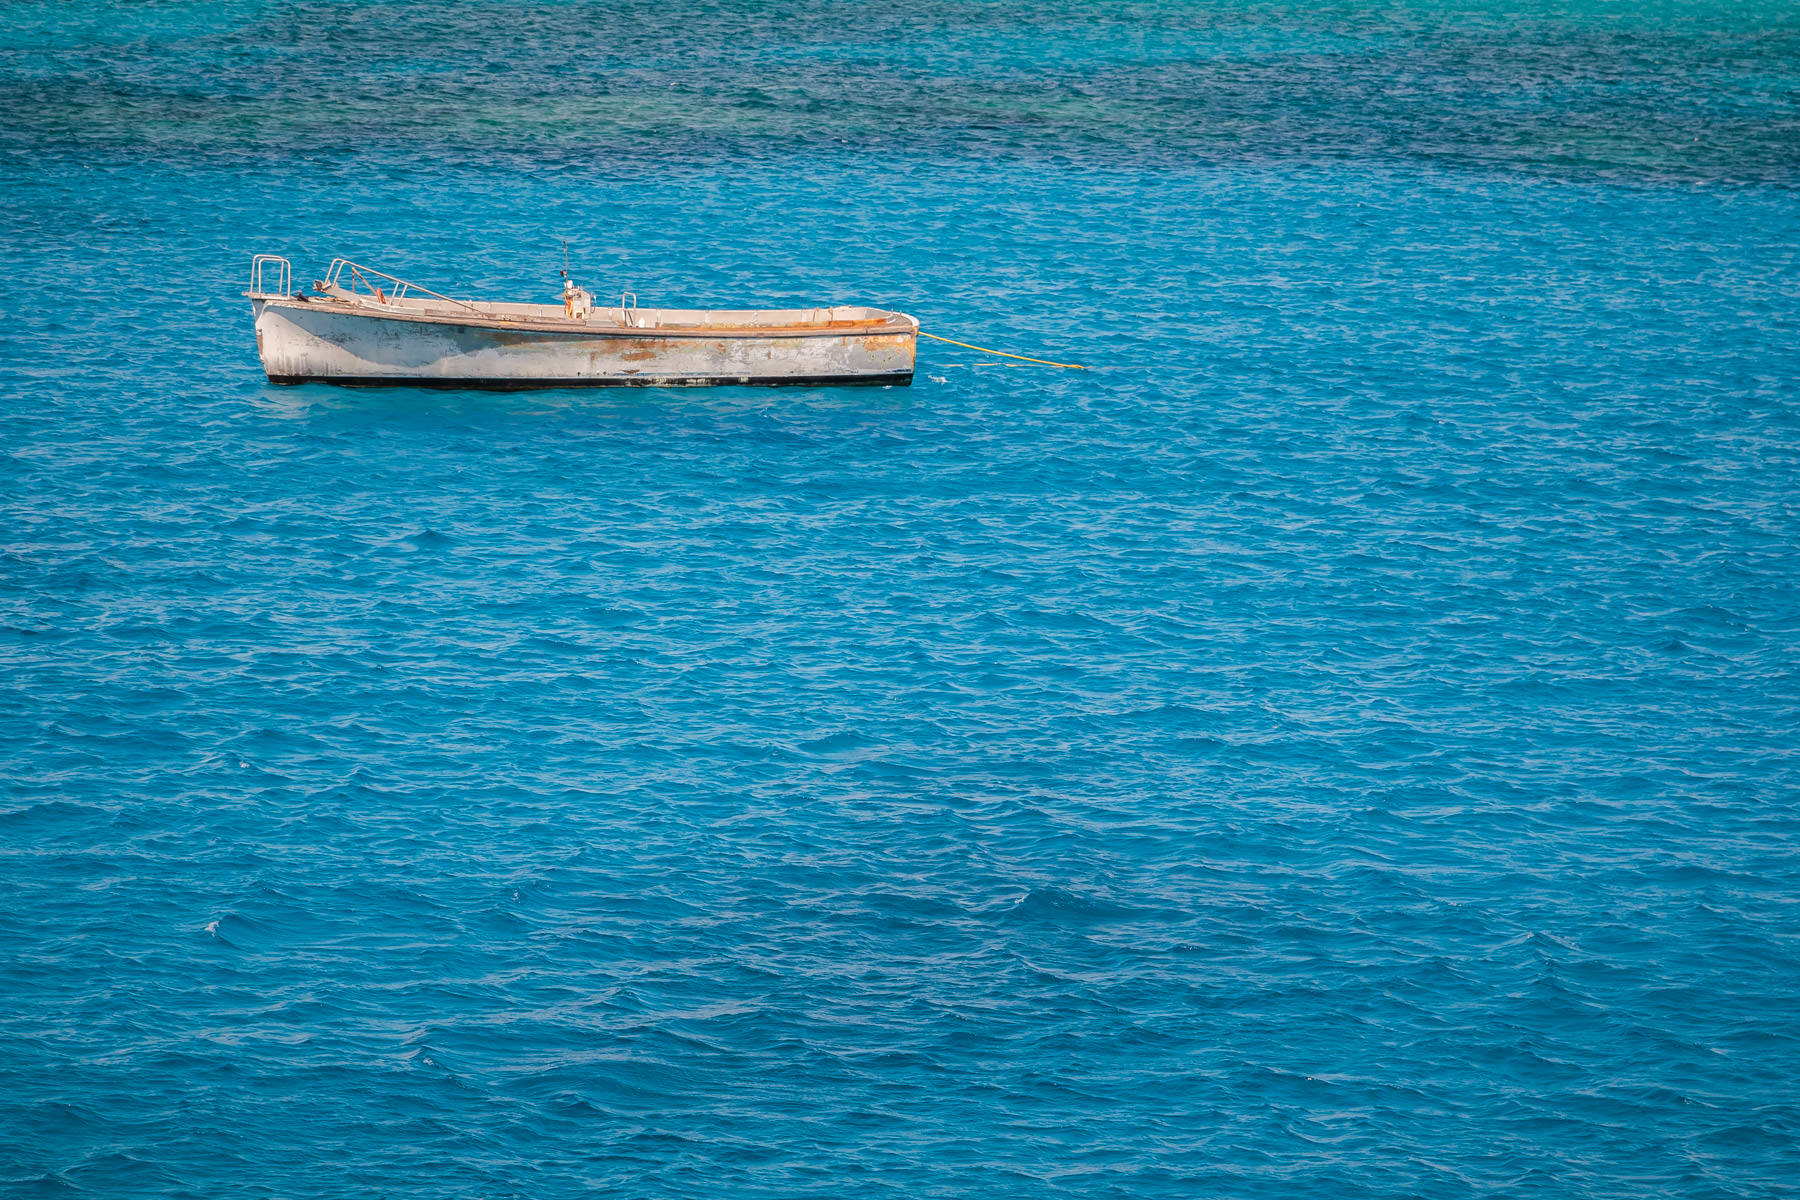 A boat floats in the Caribbean Sea just off the coast of George Town, Grand Cayman.